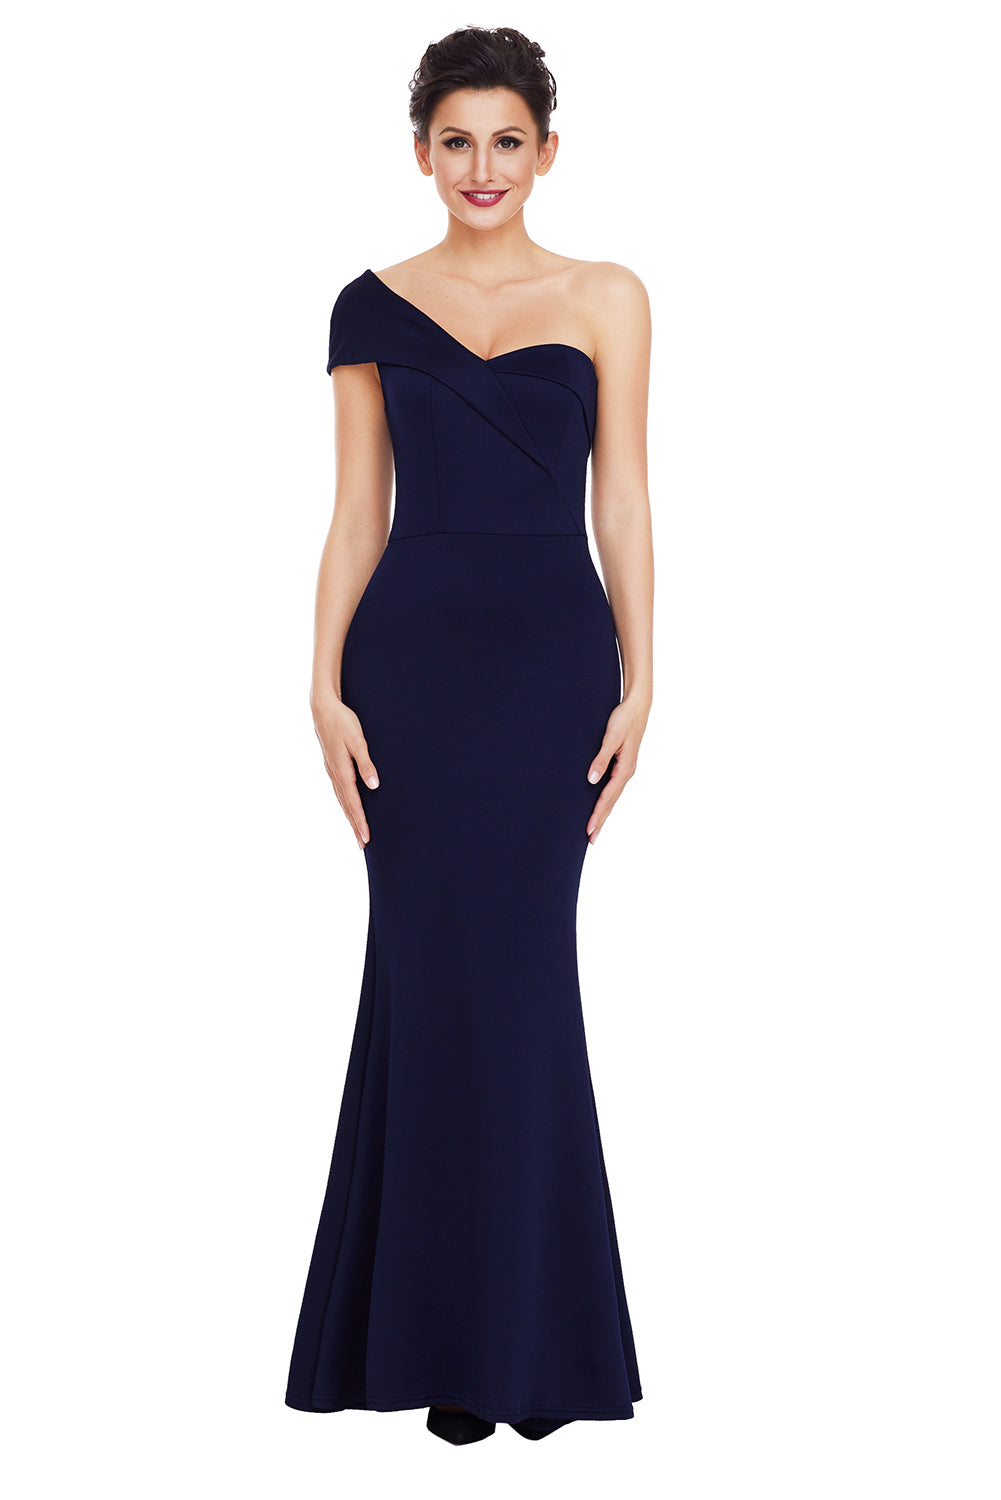 A| Chicloth Navy Blue Sexy One Shoulder Ponti Gown-Evening Dresses-Chicloth